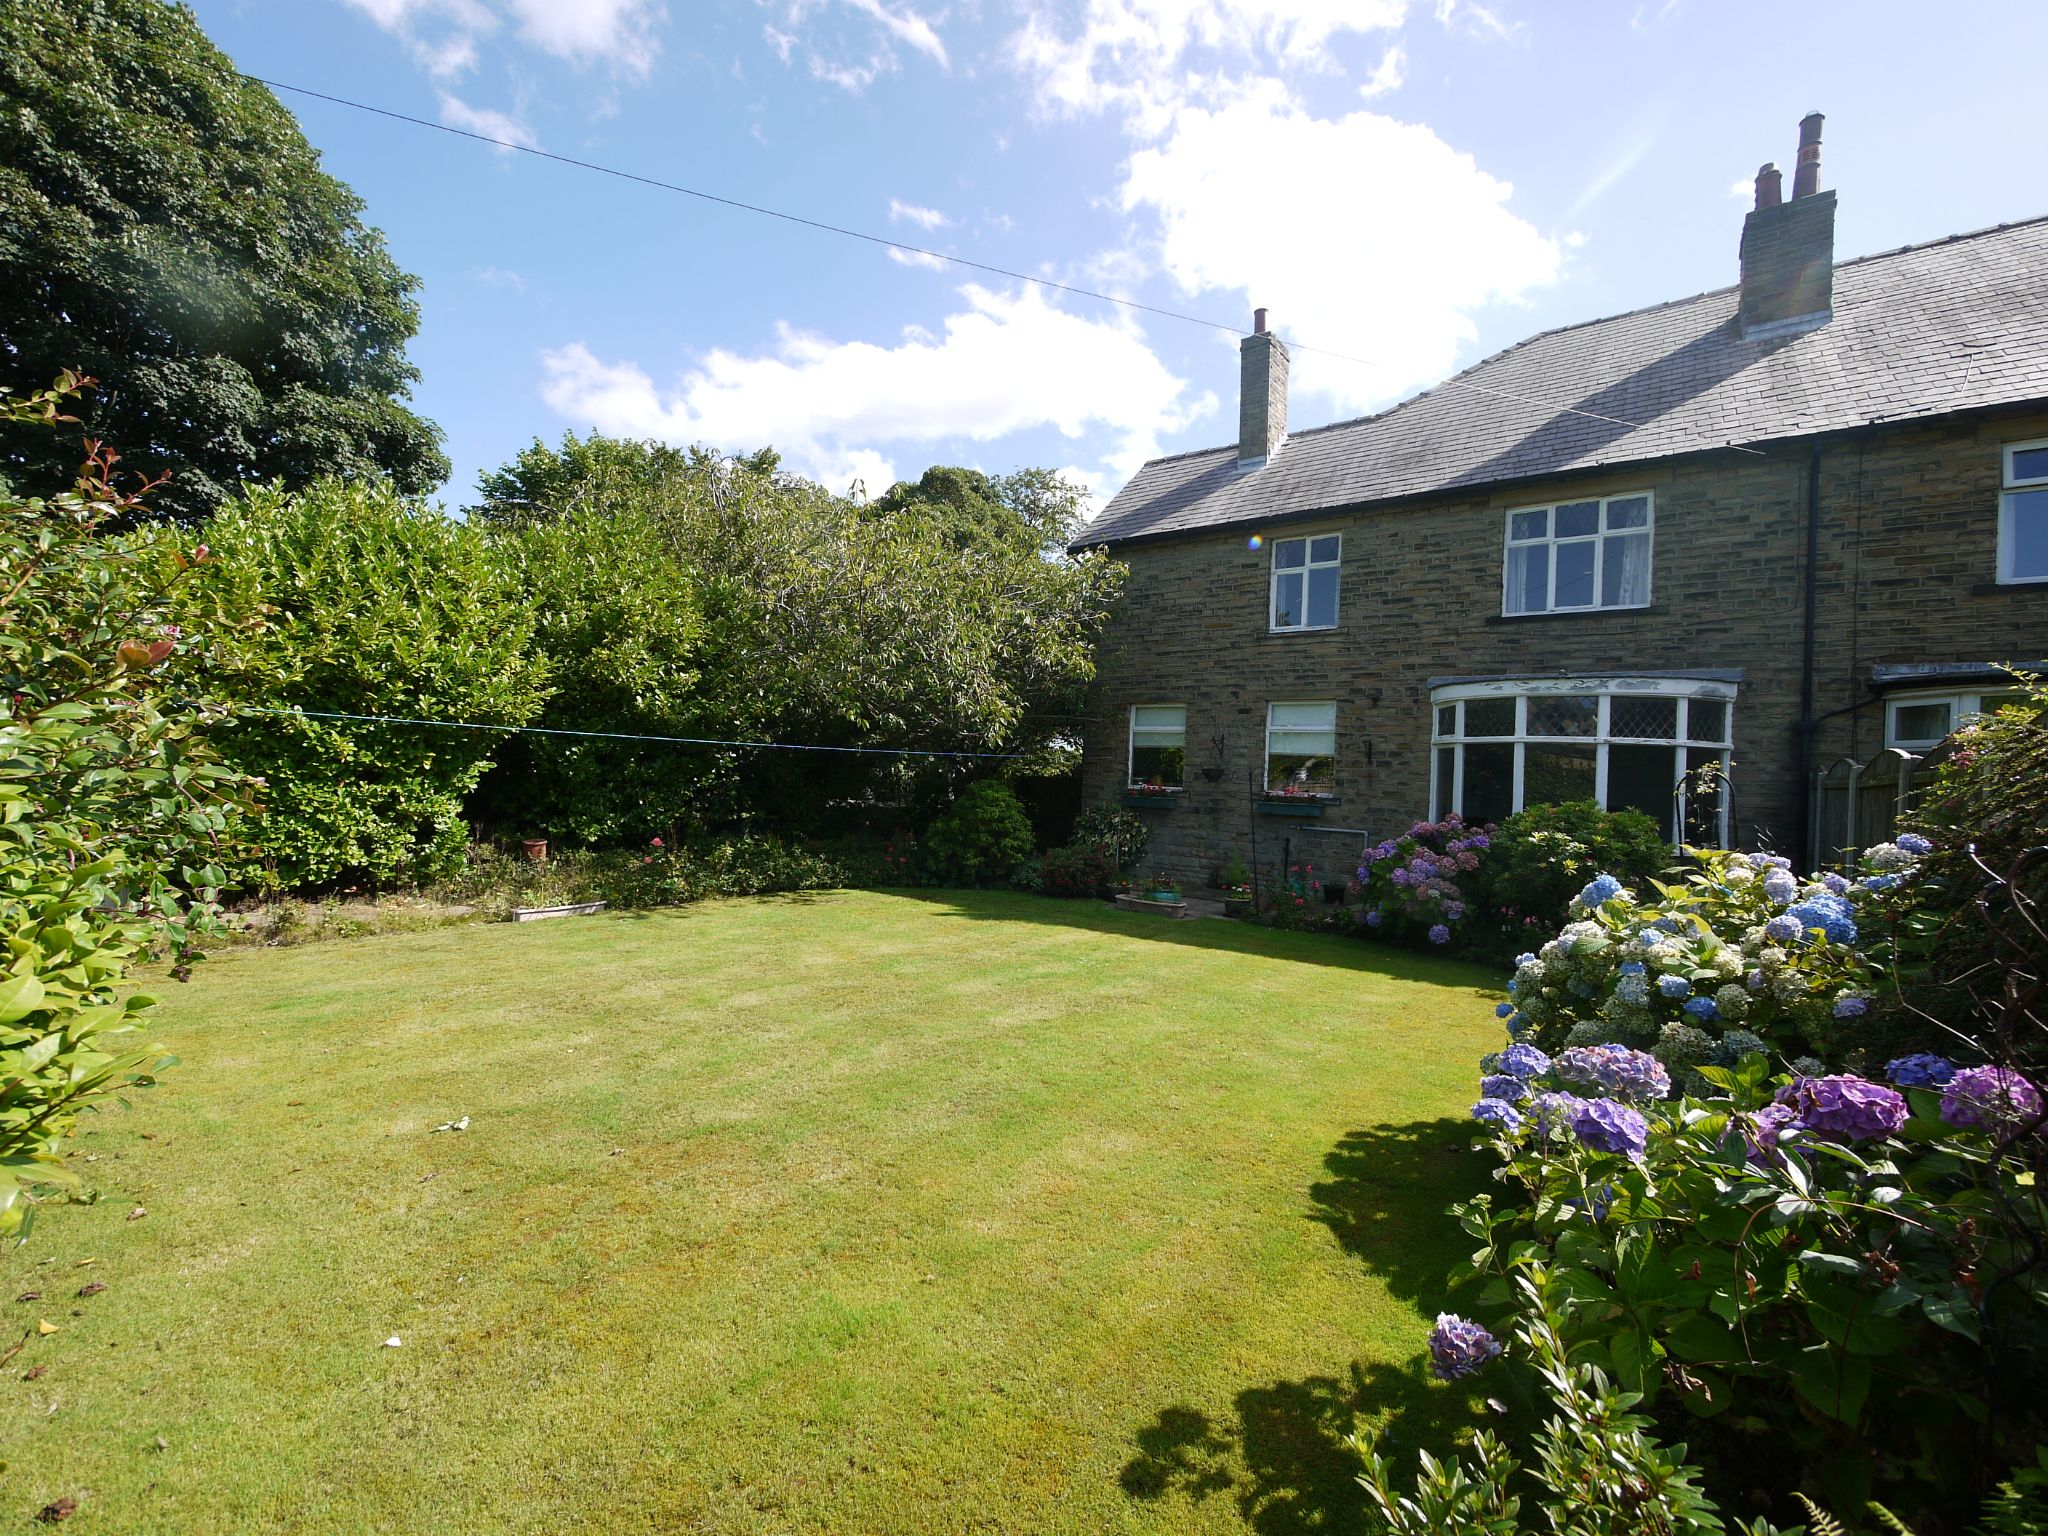 4 bedroom semi-detached house SSTC in Brighouse - Rear.